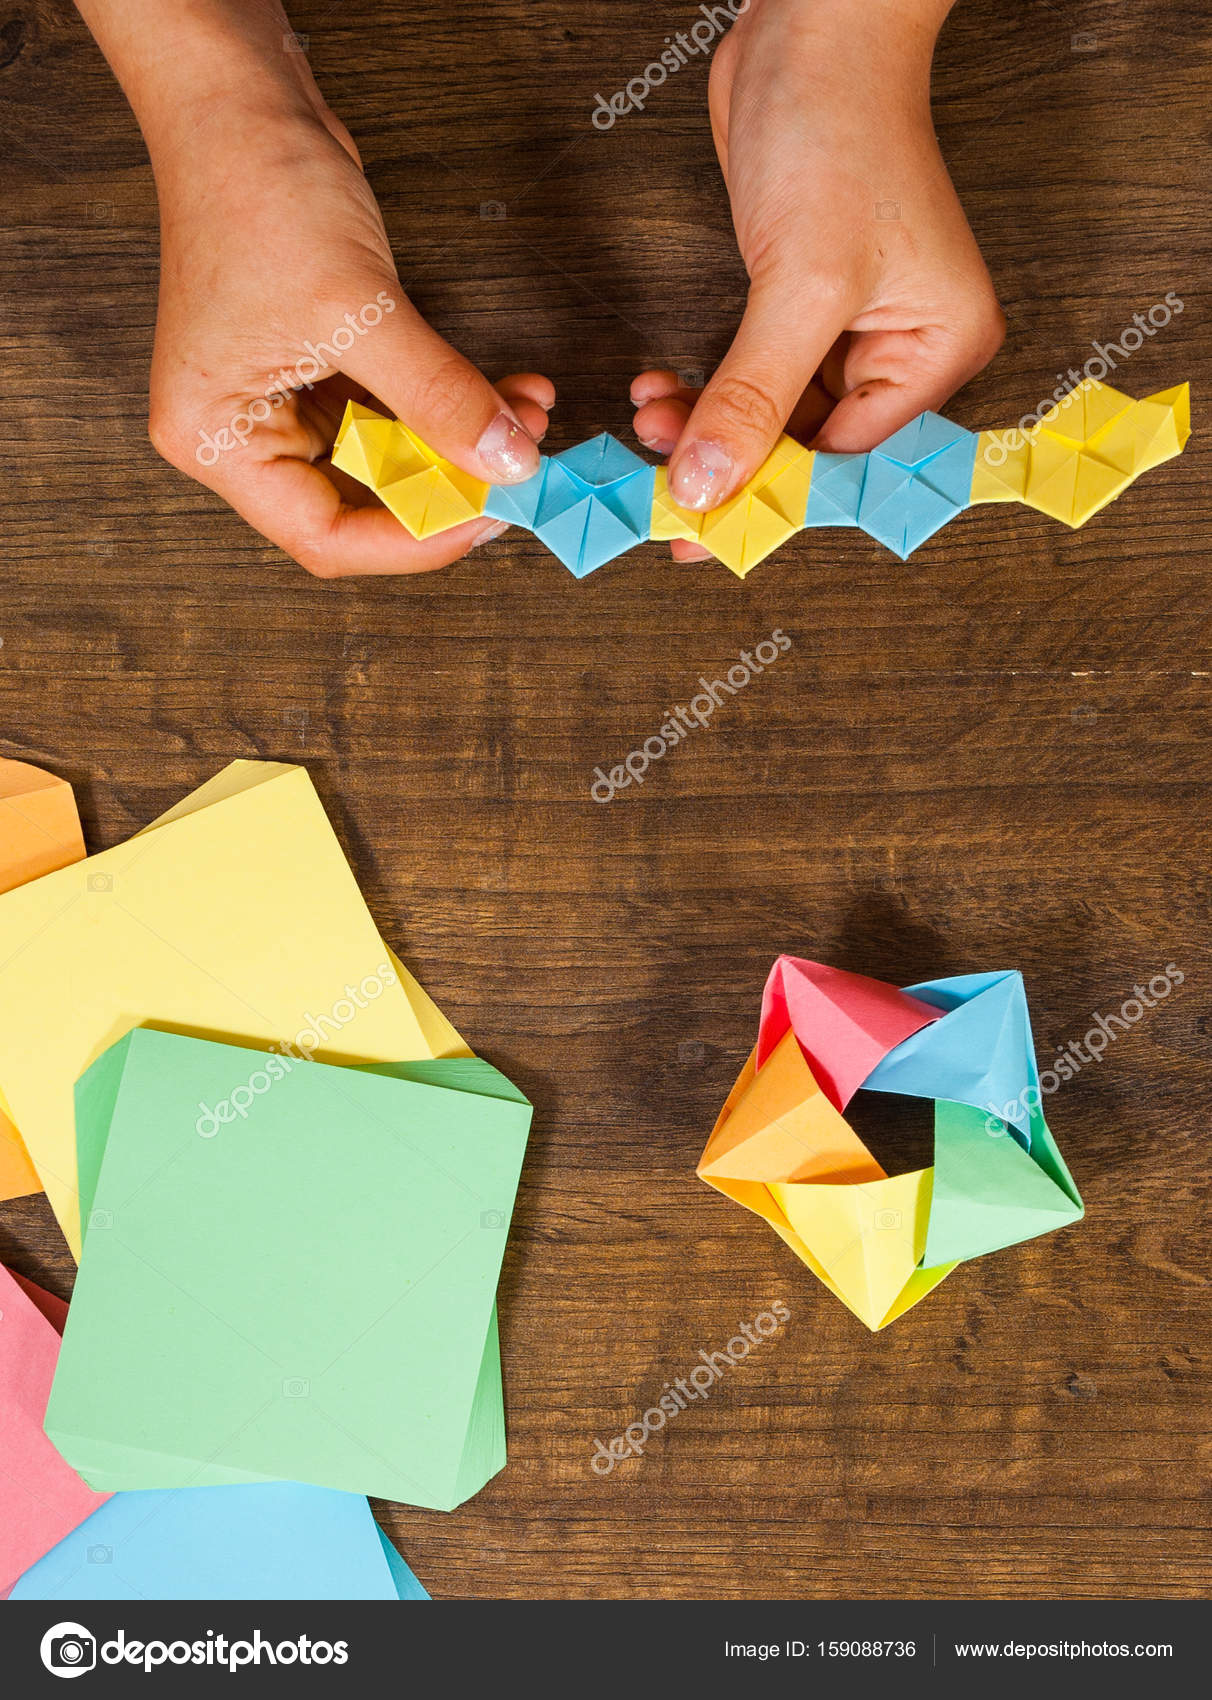 Children S Creativity Made Of Paper Origami Crafts Handicrafts For